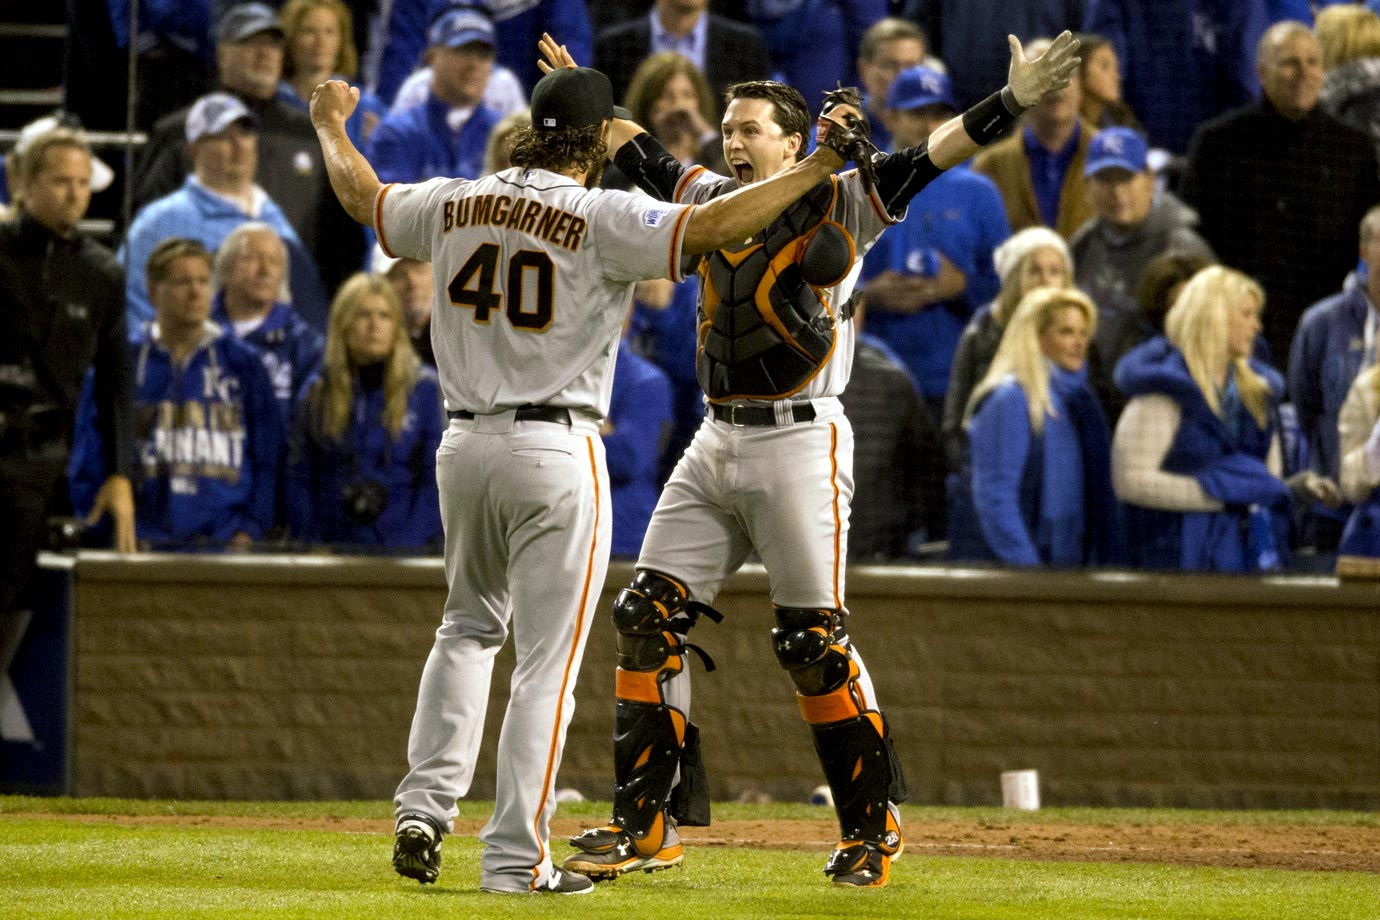 After the Giants went ahead 3-2 in the top of the fifth of Game 7, manager Bruce Bochy eschewed his normal relief options and called for ace Madison Bumgarner, who threw 117 pitches three days earlier. MadBum stared down the Royals for five innings, giving up a hit to the first batter he faced and then retiring the next 14 in a row. He induced Royals catcher Salvador Perez to foul out to third for the final out, giving the Giants their third title in five seasons. Bumgarner was credited with a save, and he finished the Fall Classic 2-0 with a 0.43 ERA and 17 strikeouts against just one walk. And, yes, he was named MVP.